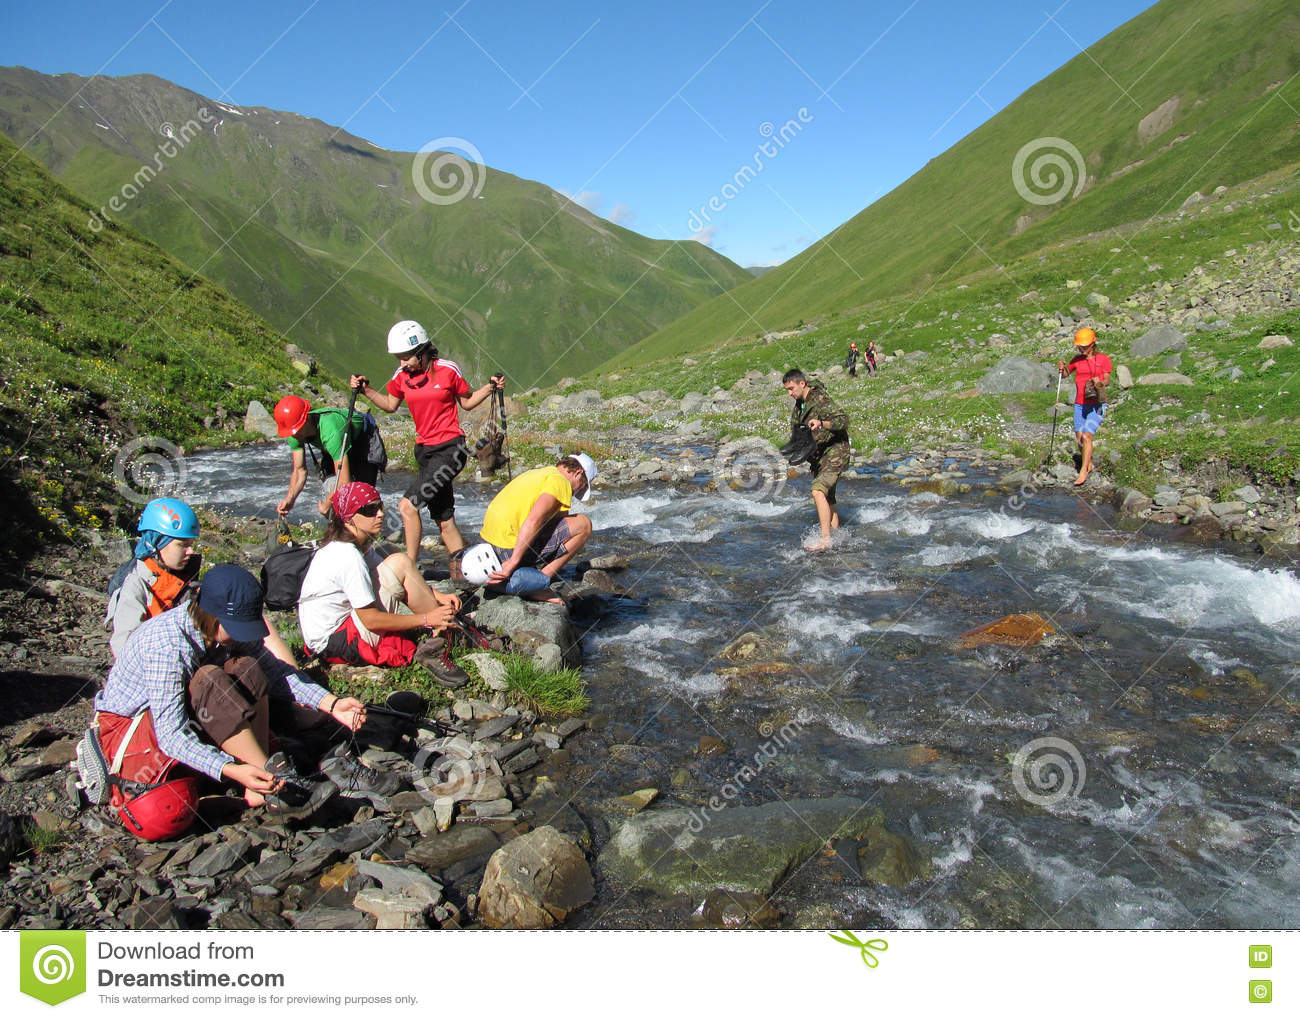 Group of climbers crossing river